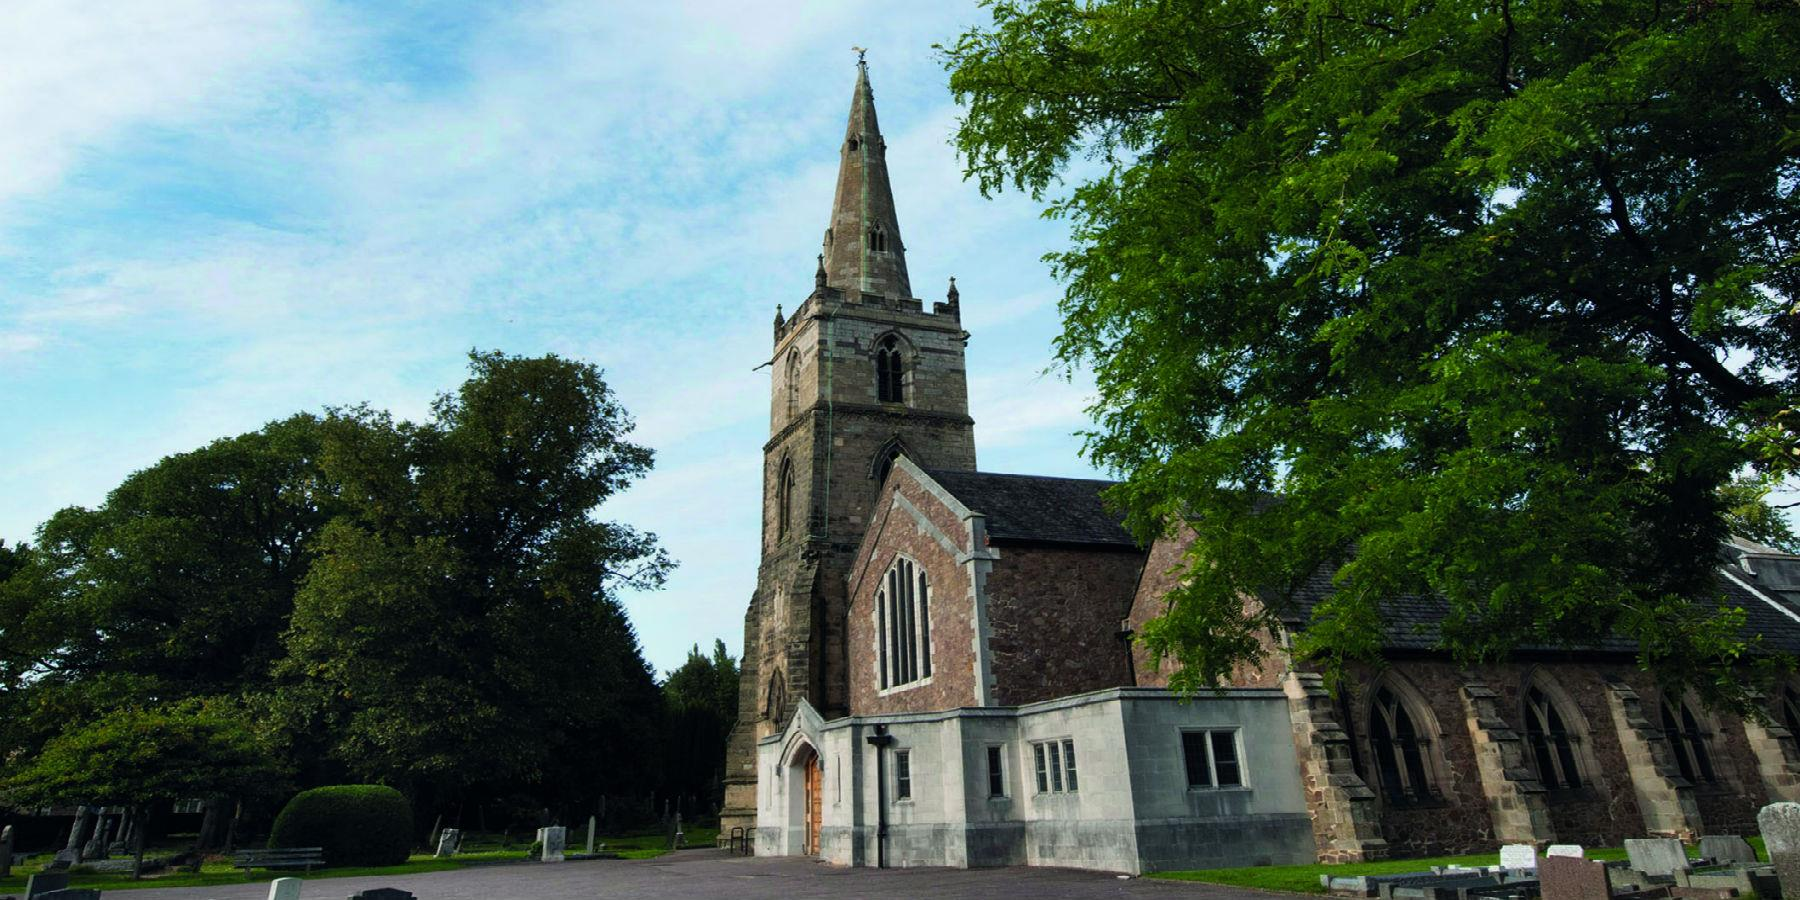 Enjoy peaceful nature and heritage sites in Knighton, on the outskirts of Leicester.